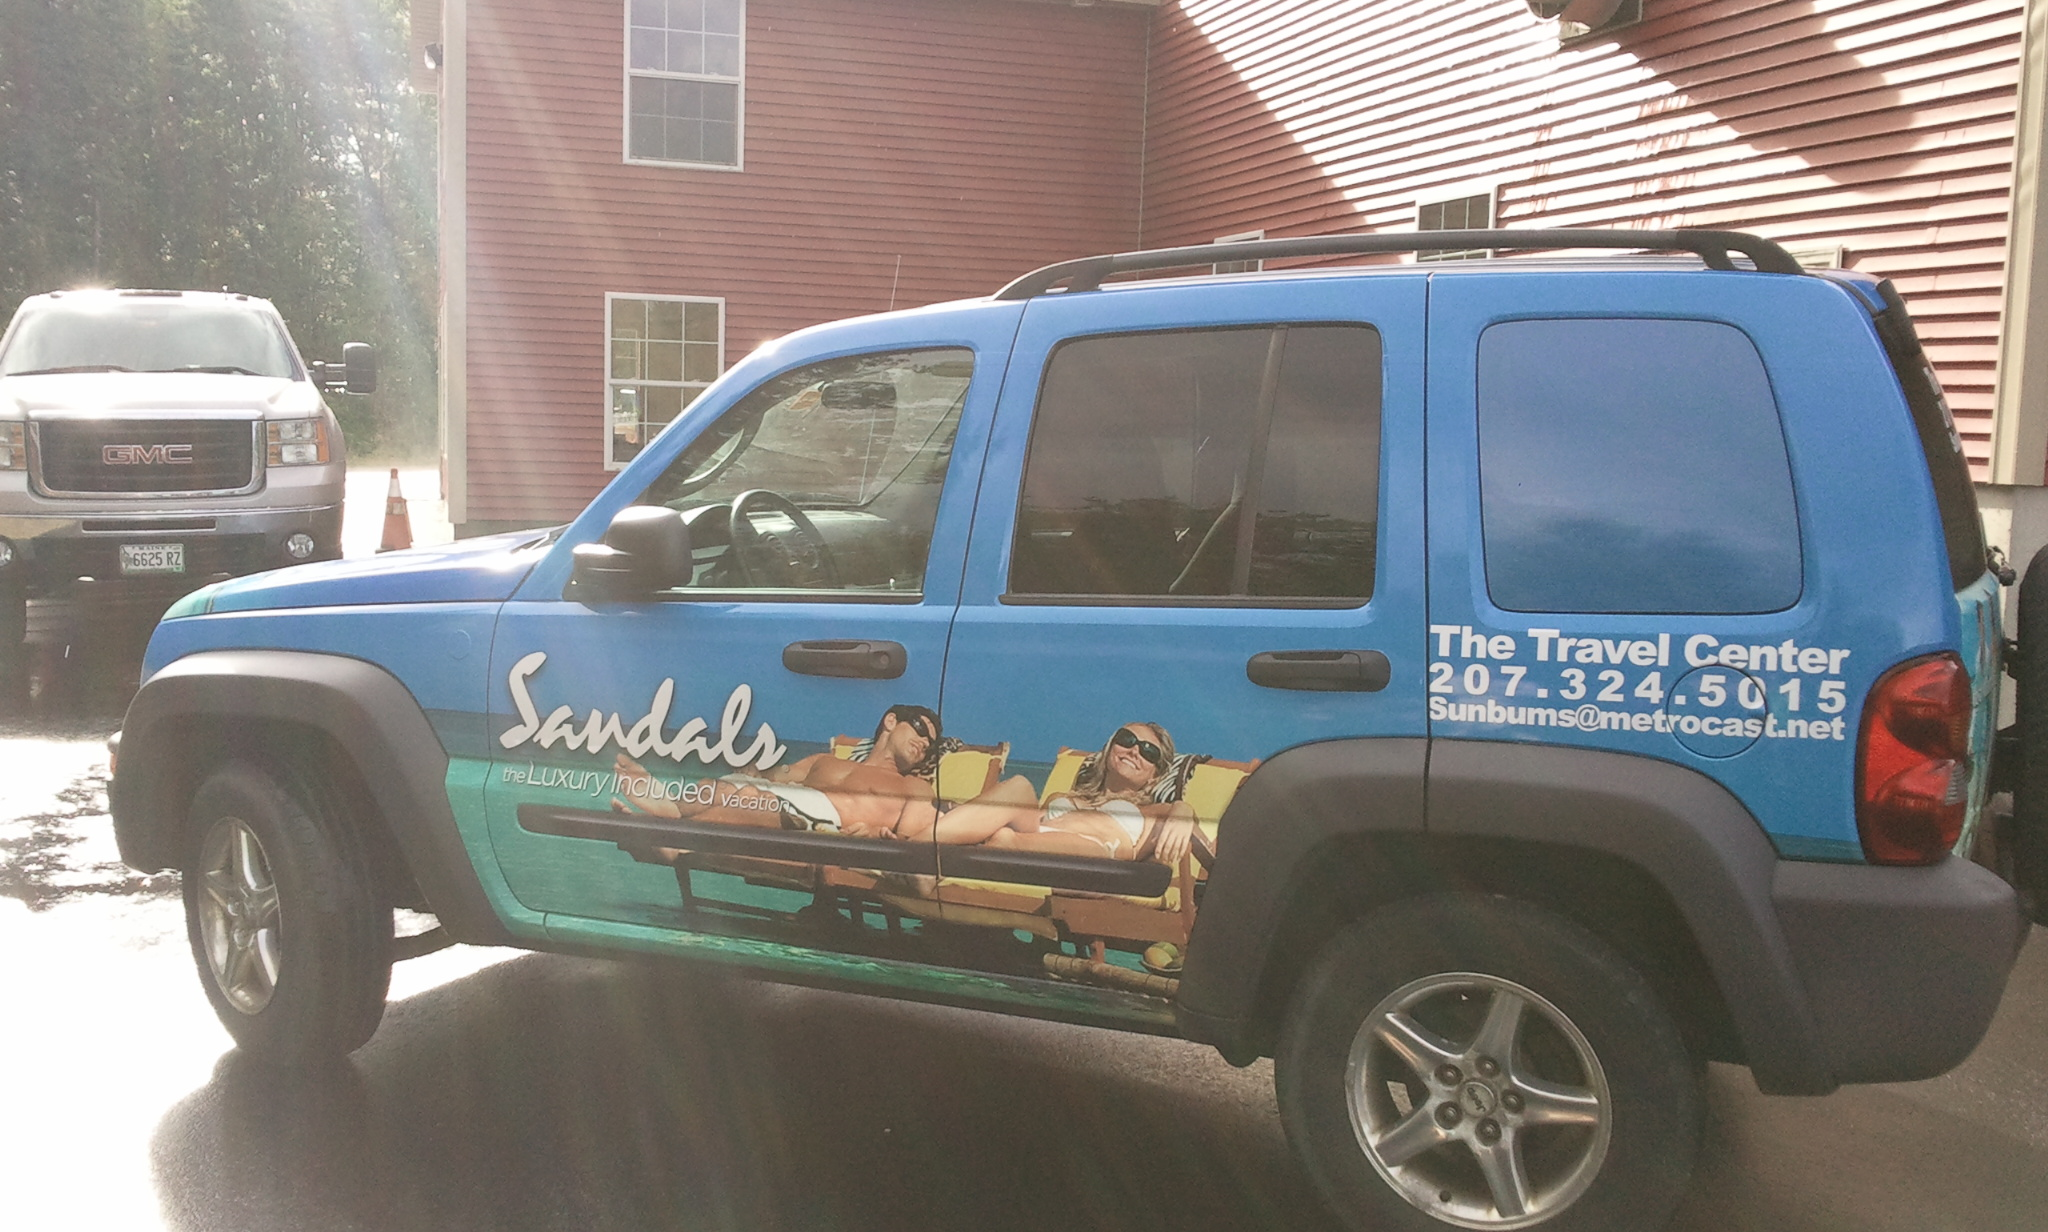 full vehicle wrap for sanford maine business by lake graphics